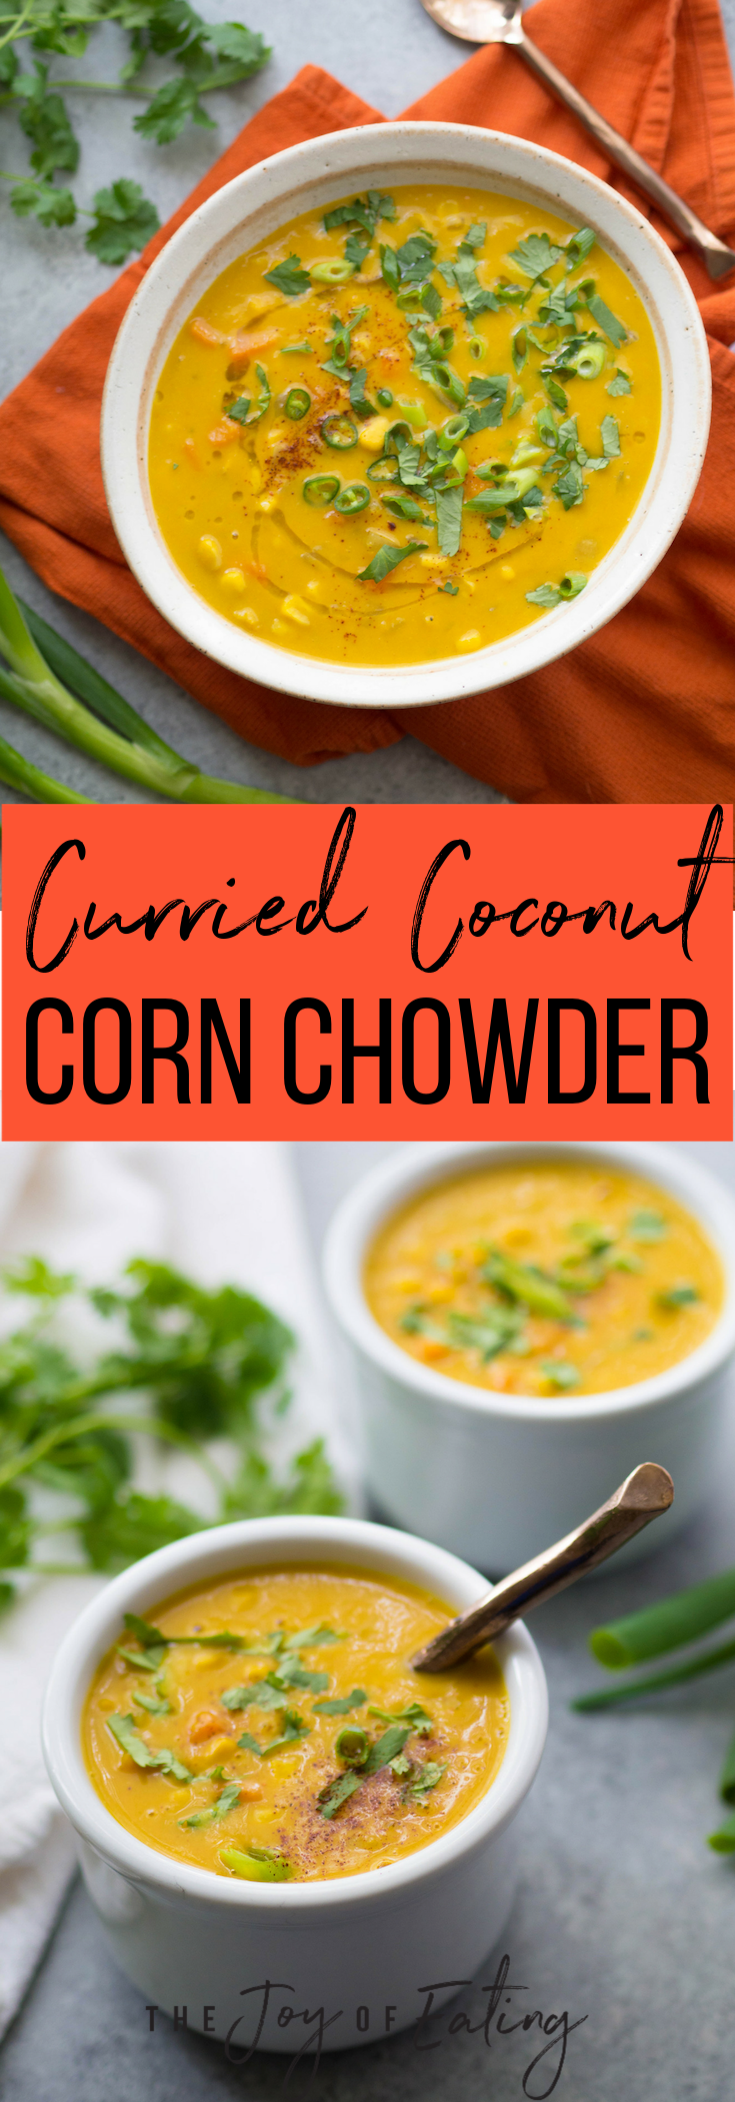 Make this vegan curried coconut corn chowder! It's packed with flavor from curry, turmeric and ginger, and tons of creamy texture from coconut milk! #soup #vegan #vegetarian #glutenfree #healthyrecipe #corn #coconut #easyrecipe